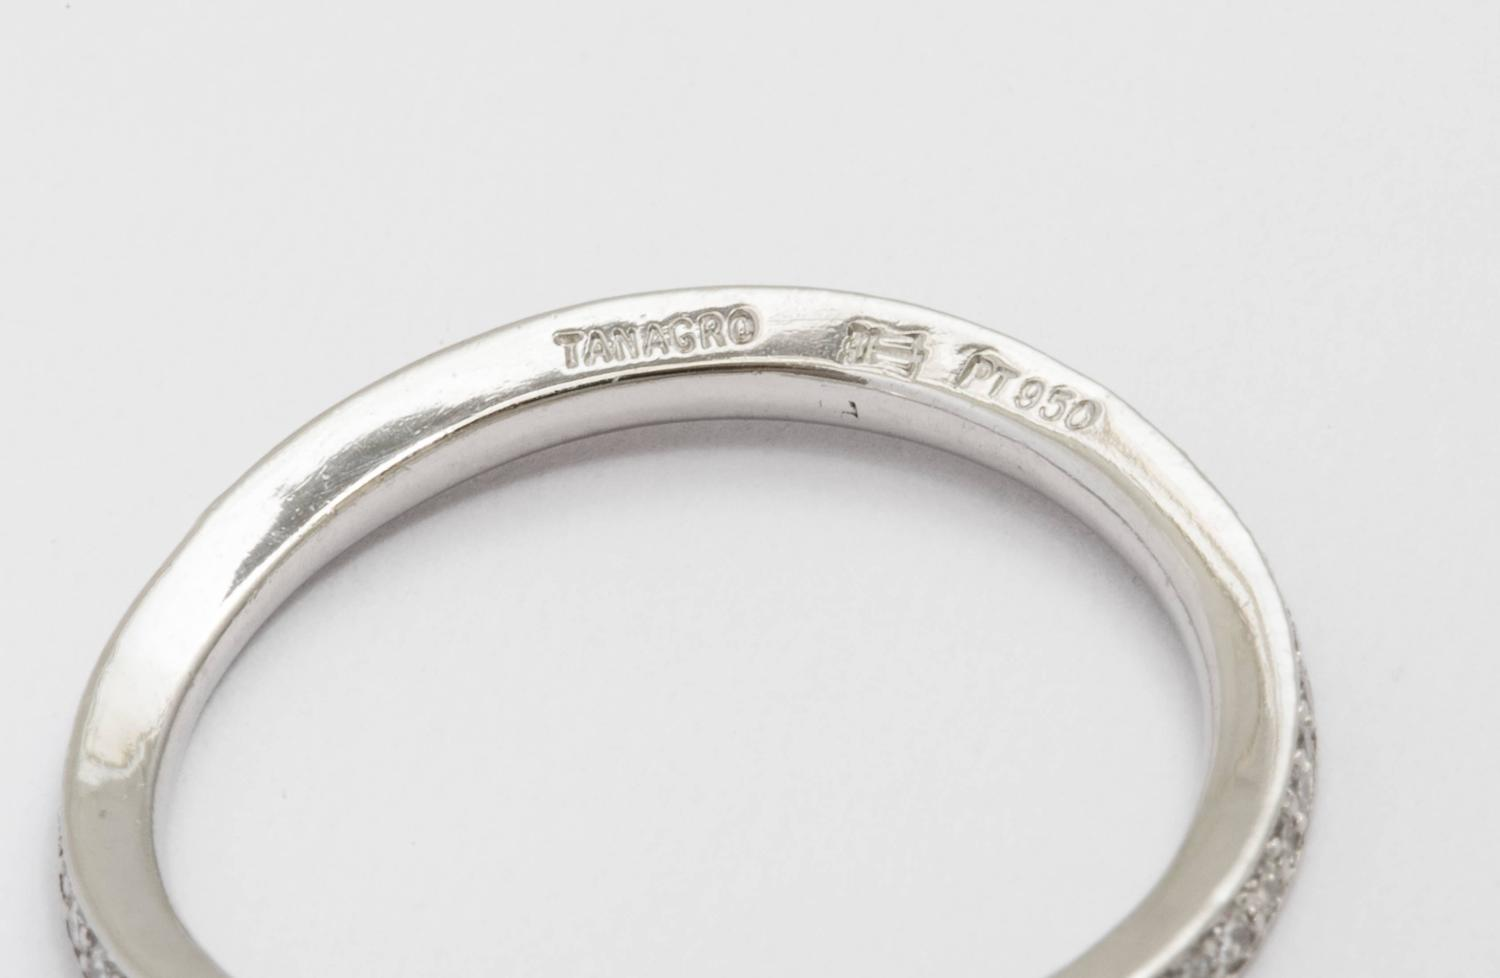 Tanagro jewelry wave platinum 950 and diamonds band made for What is platinum jewelry made of